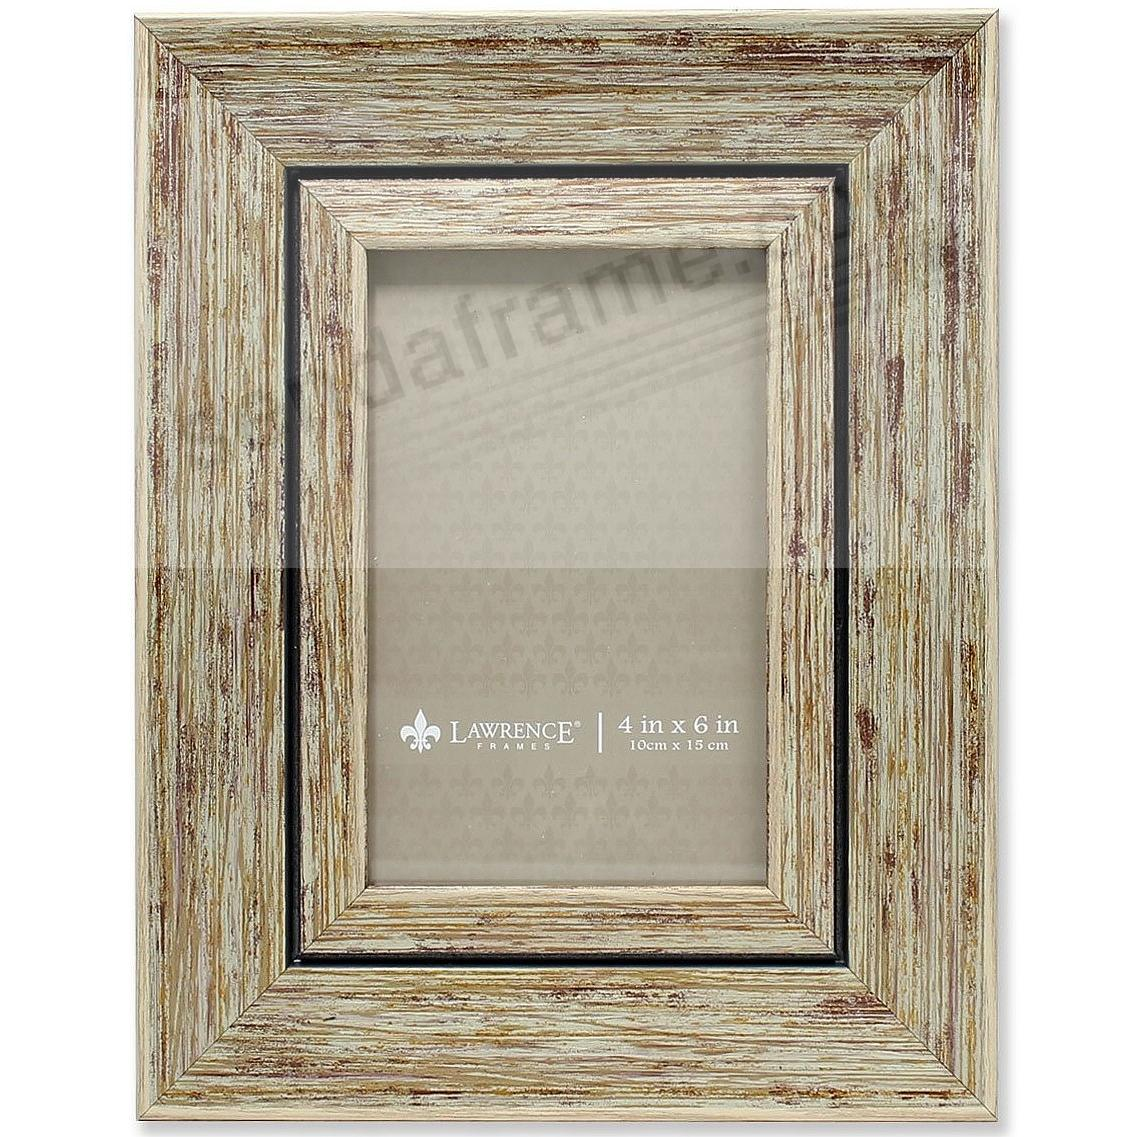 Weathered/Antique Natural Angled Wood 4x6 Frame by Lawrence®